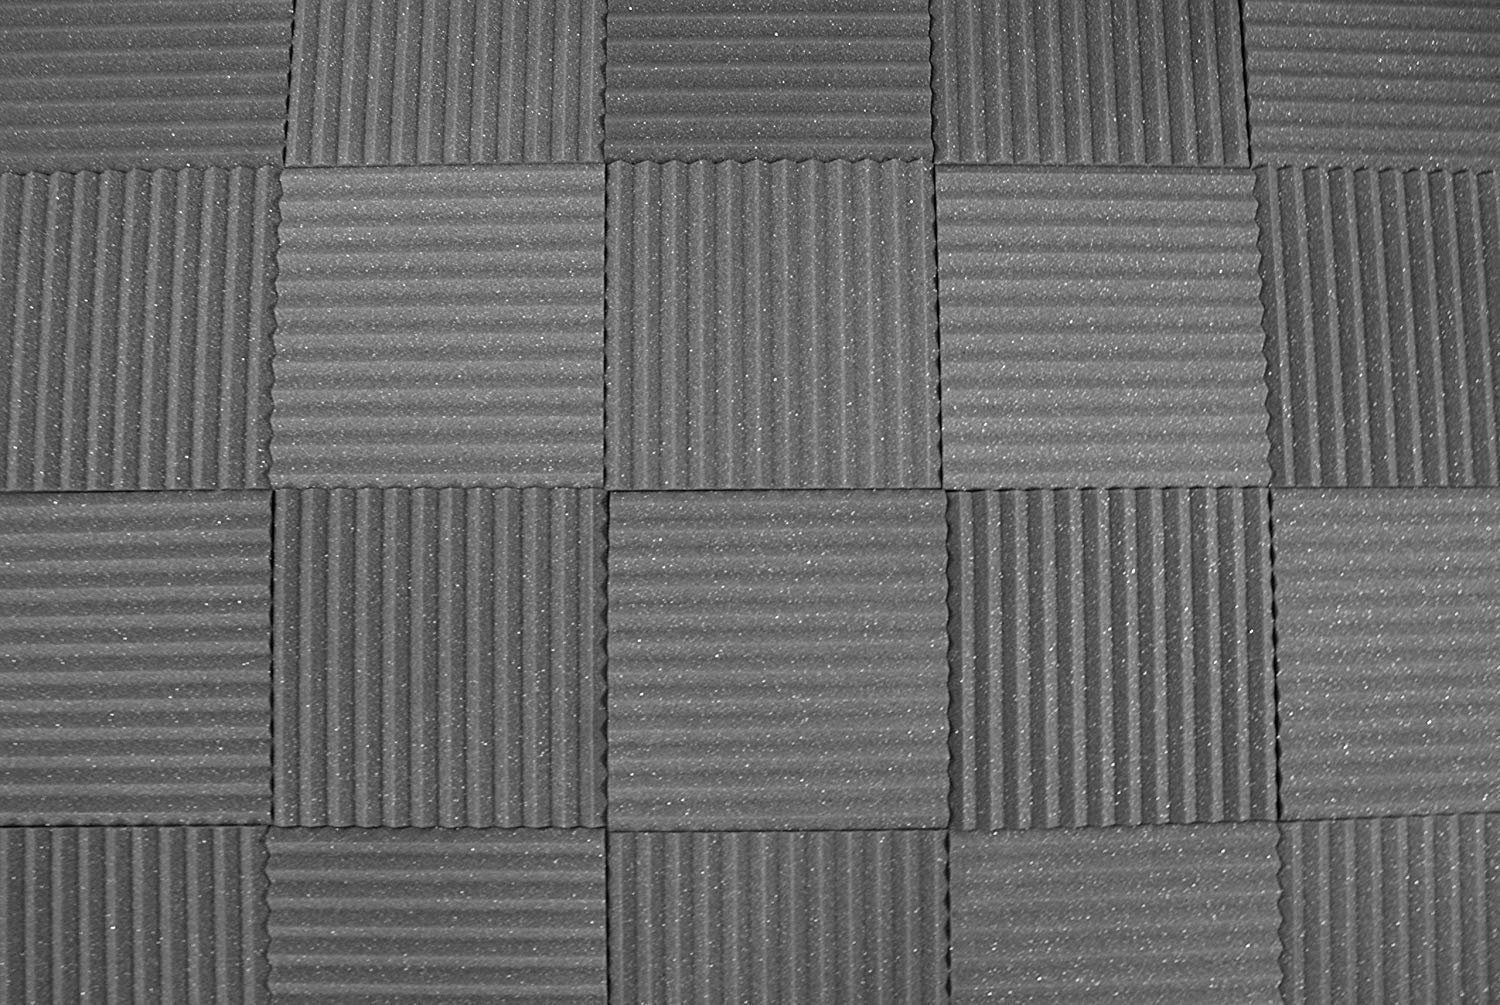 Soundproofing Acoustic Studio Foam - Wedge Style Panels - 12''x12''x1'' Tiles - 6 Pack - DIY by SoundAssured